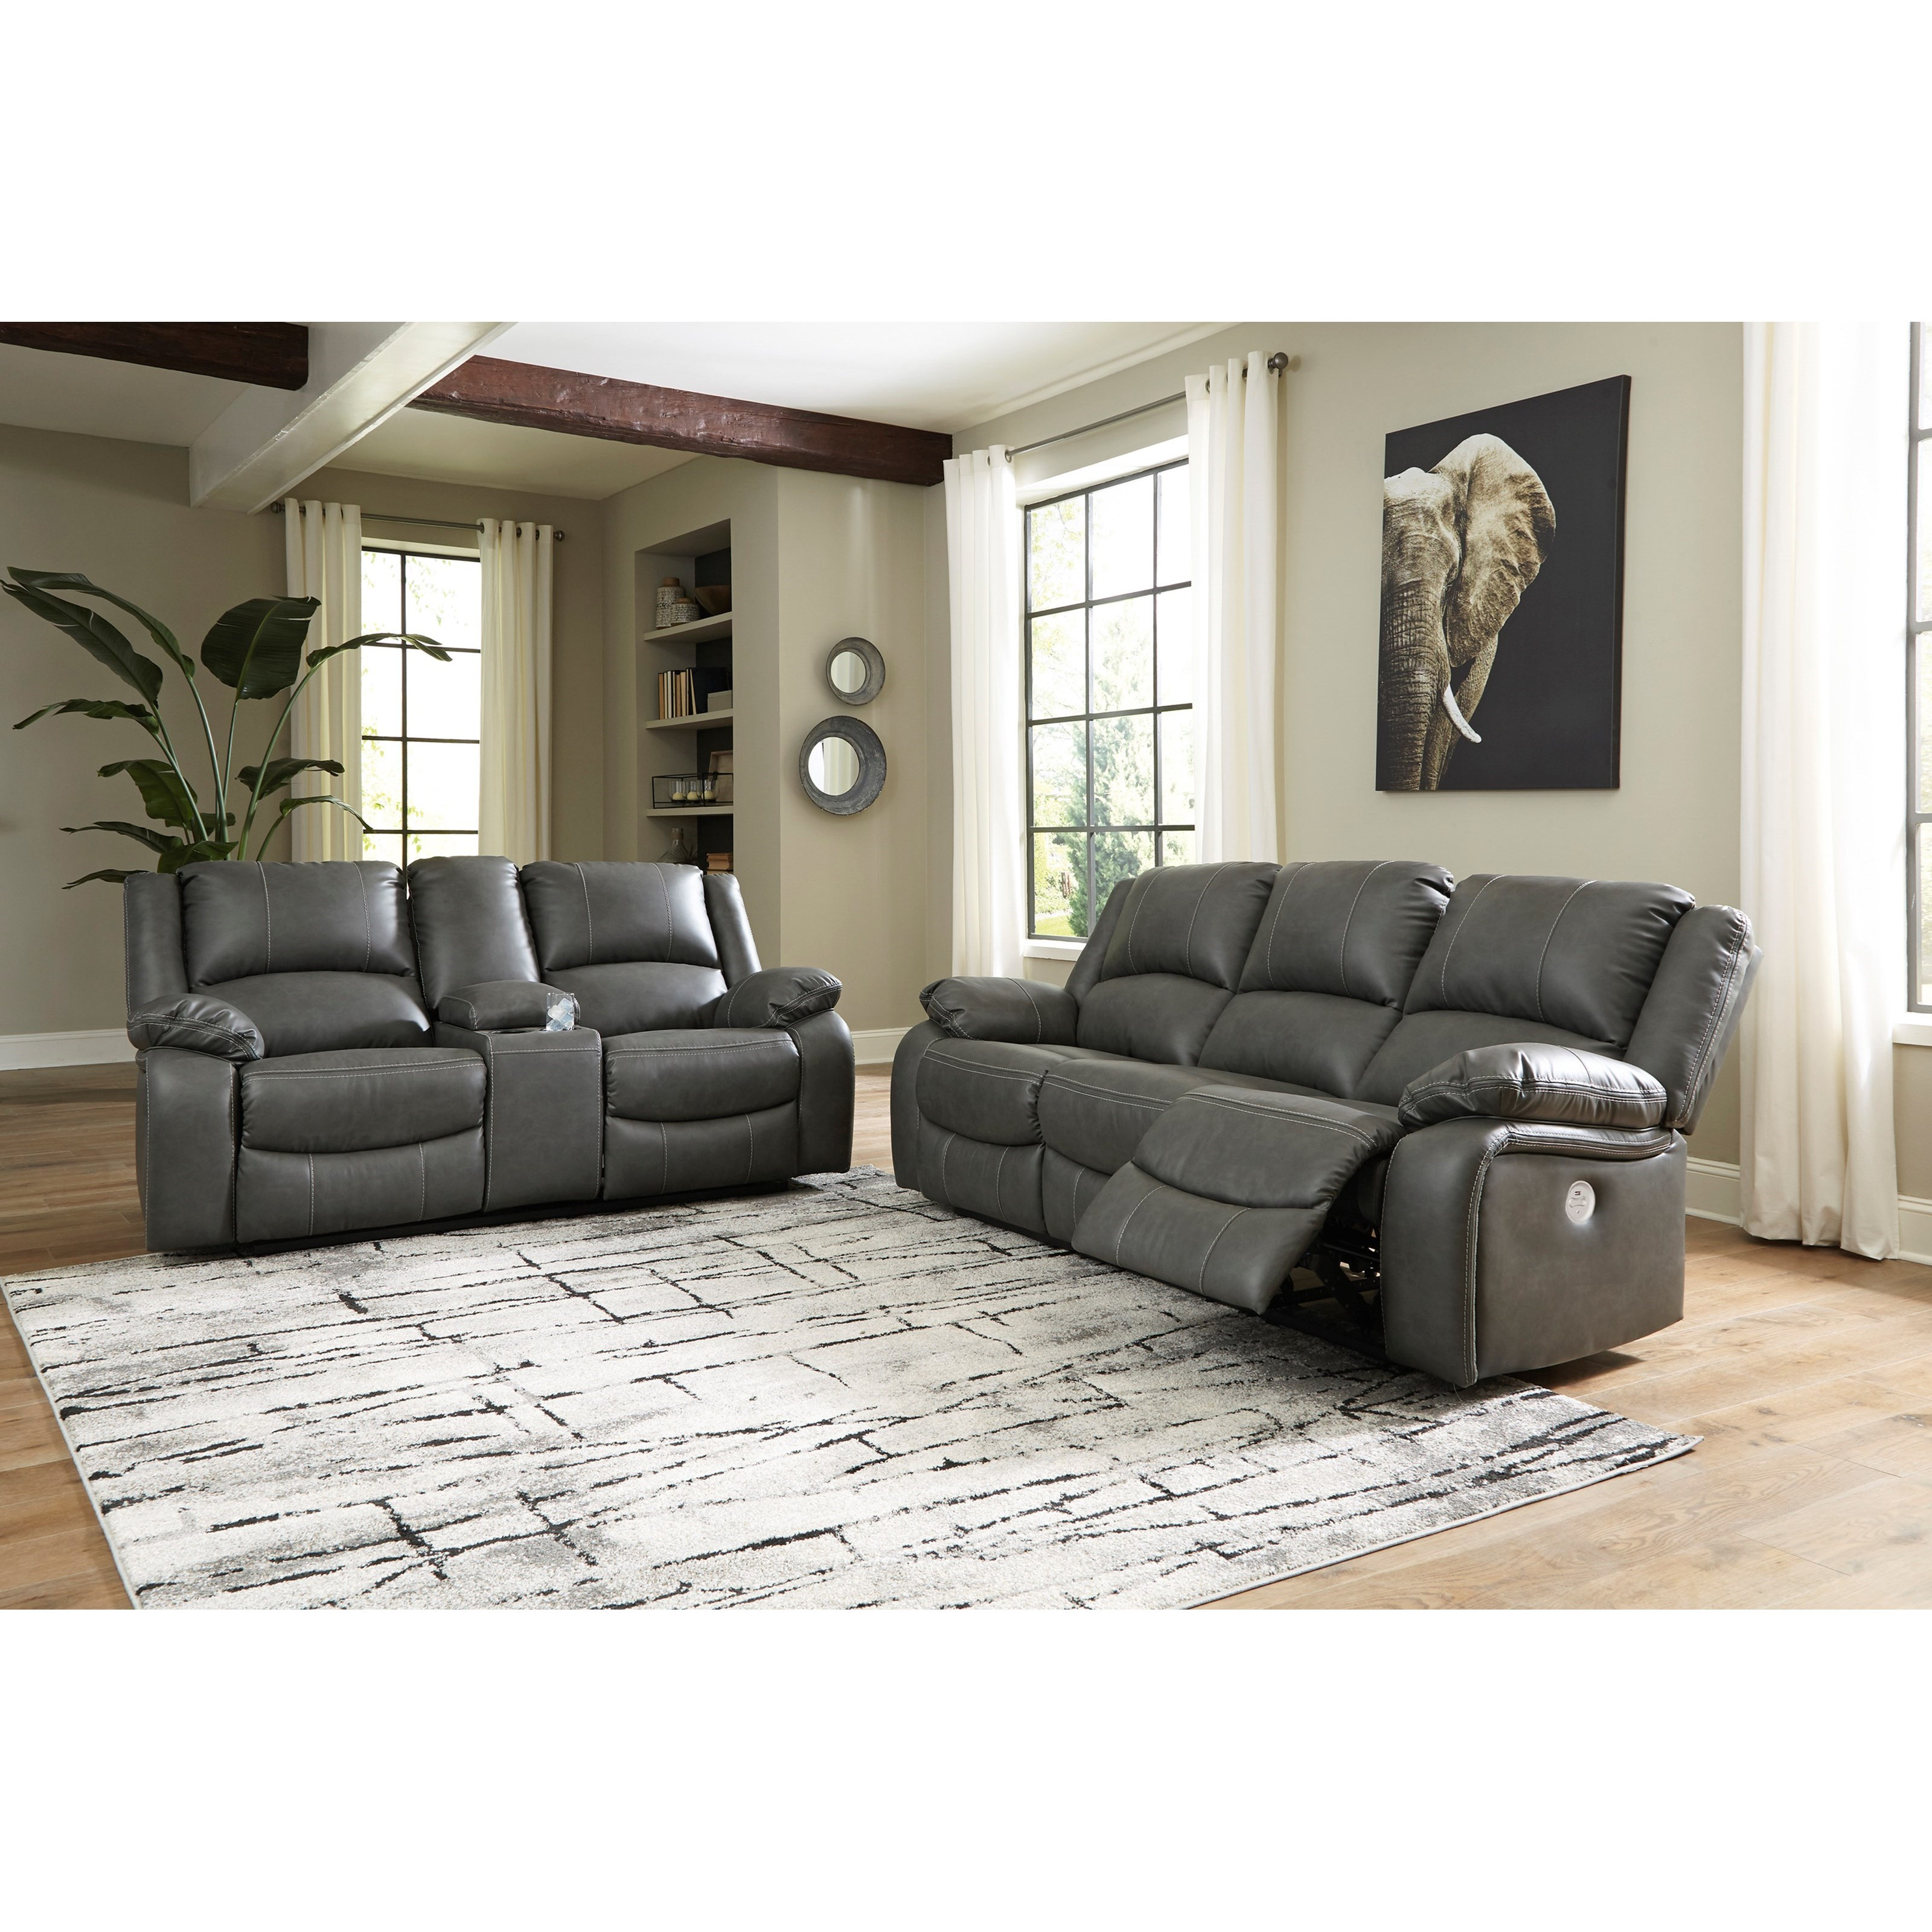 Calderwell Power Reclining Living Room Group by Signature Design by Ashley at Value City Furniture